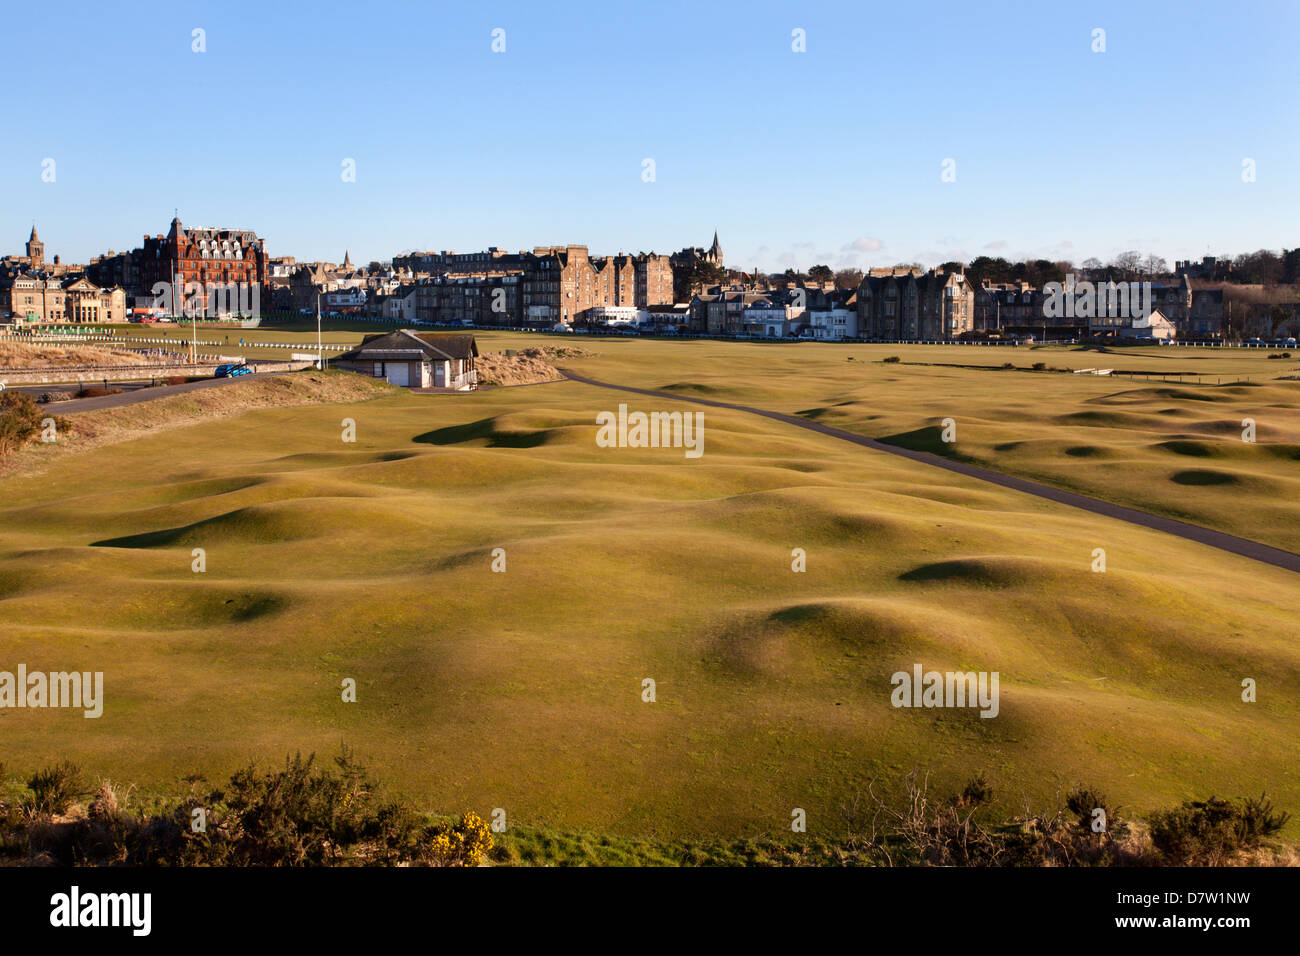 St. Andrews from the Clubhouse, Fife, Scotland, United Kingdom Stock Photo